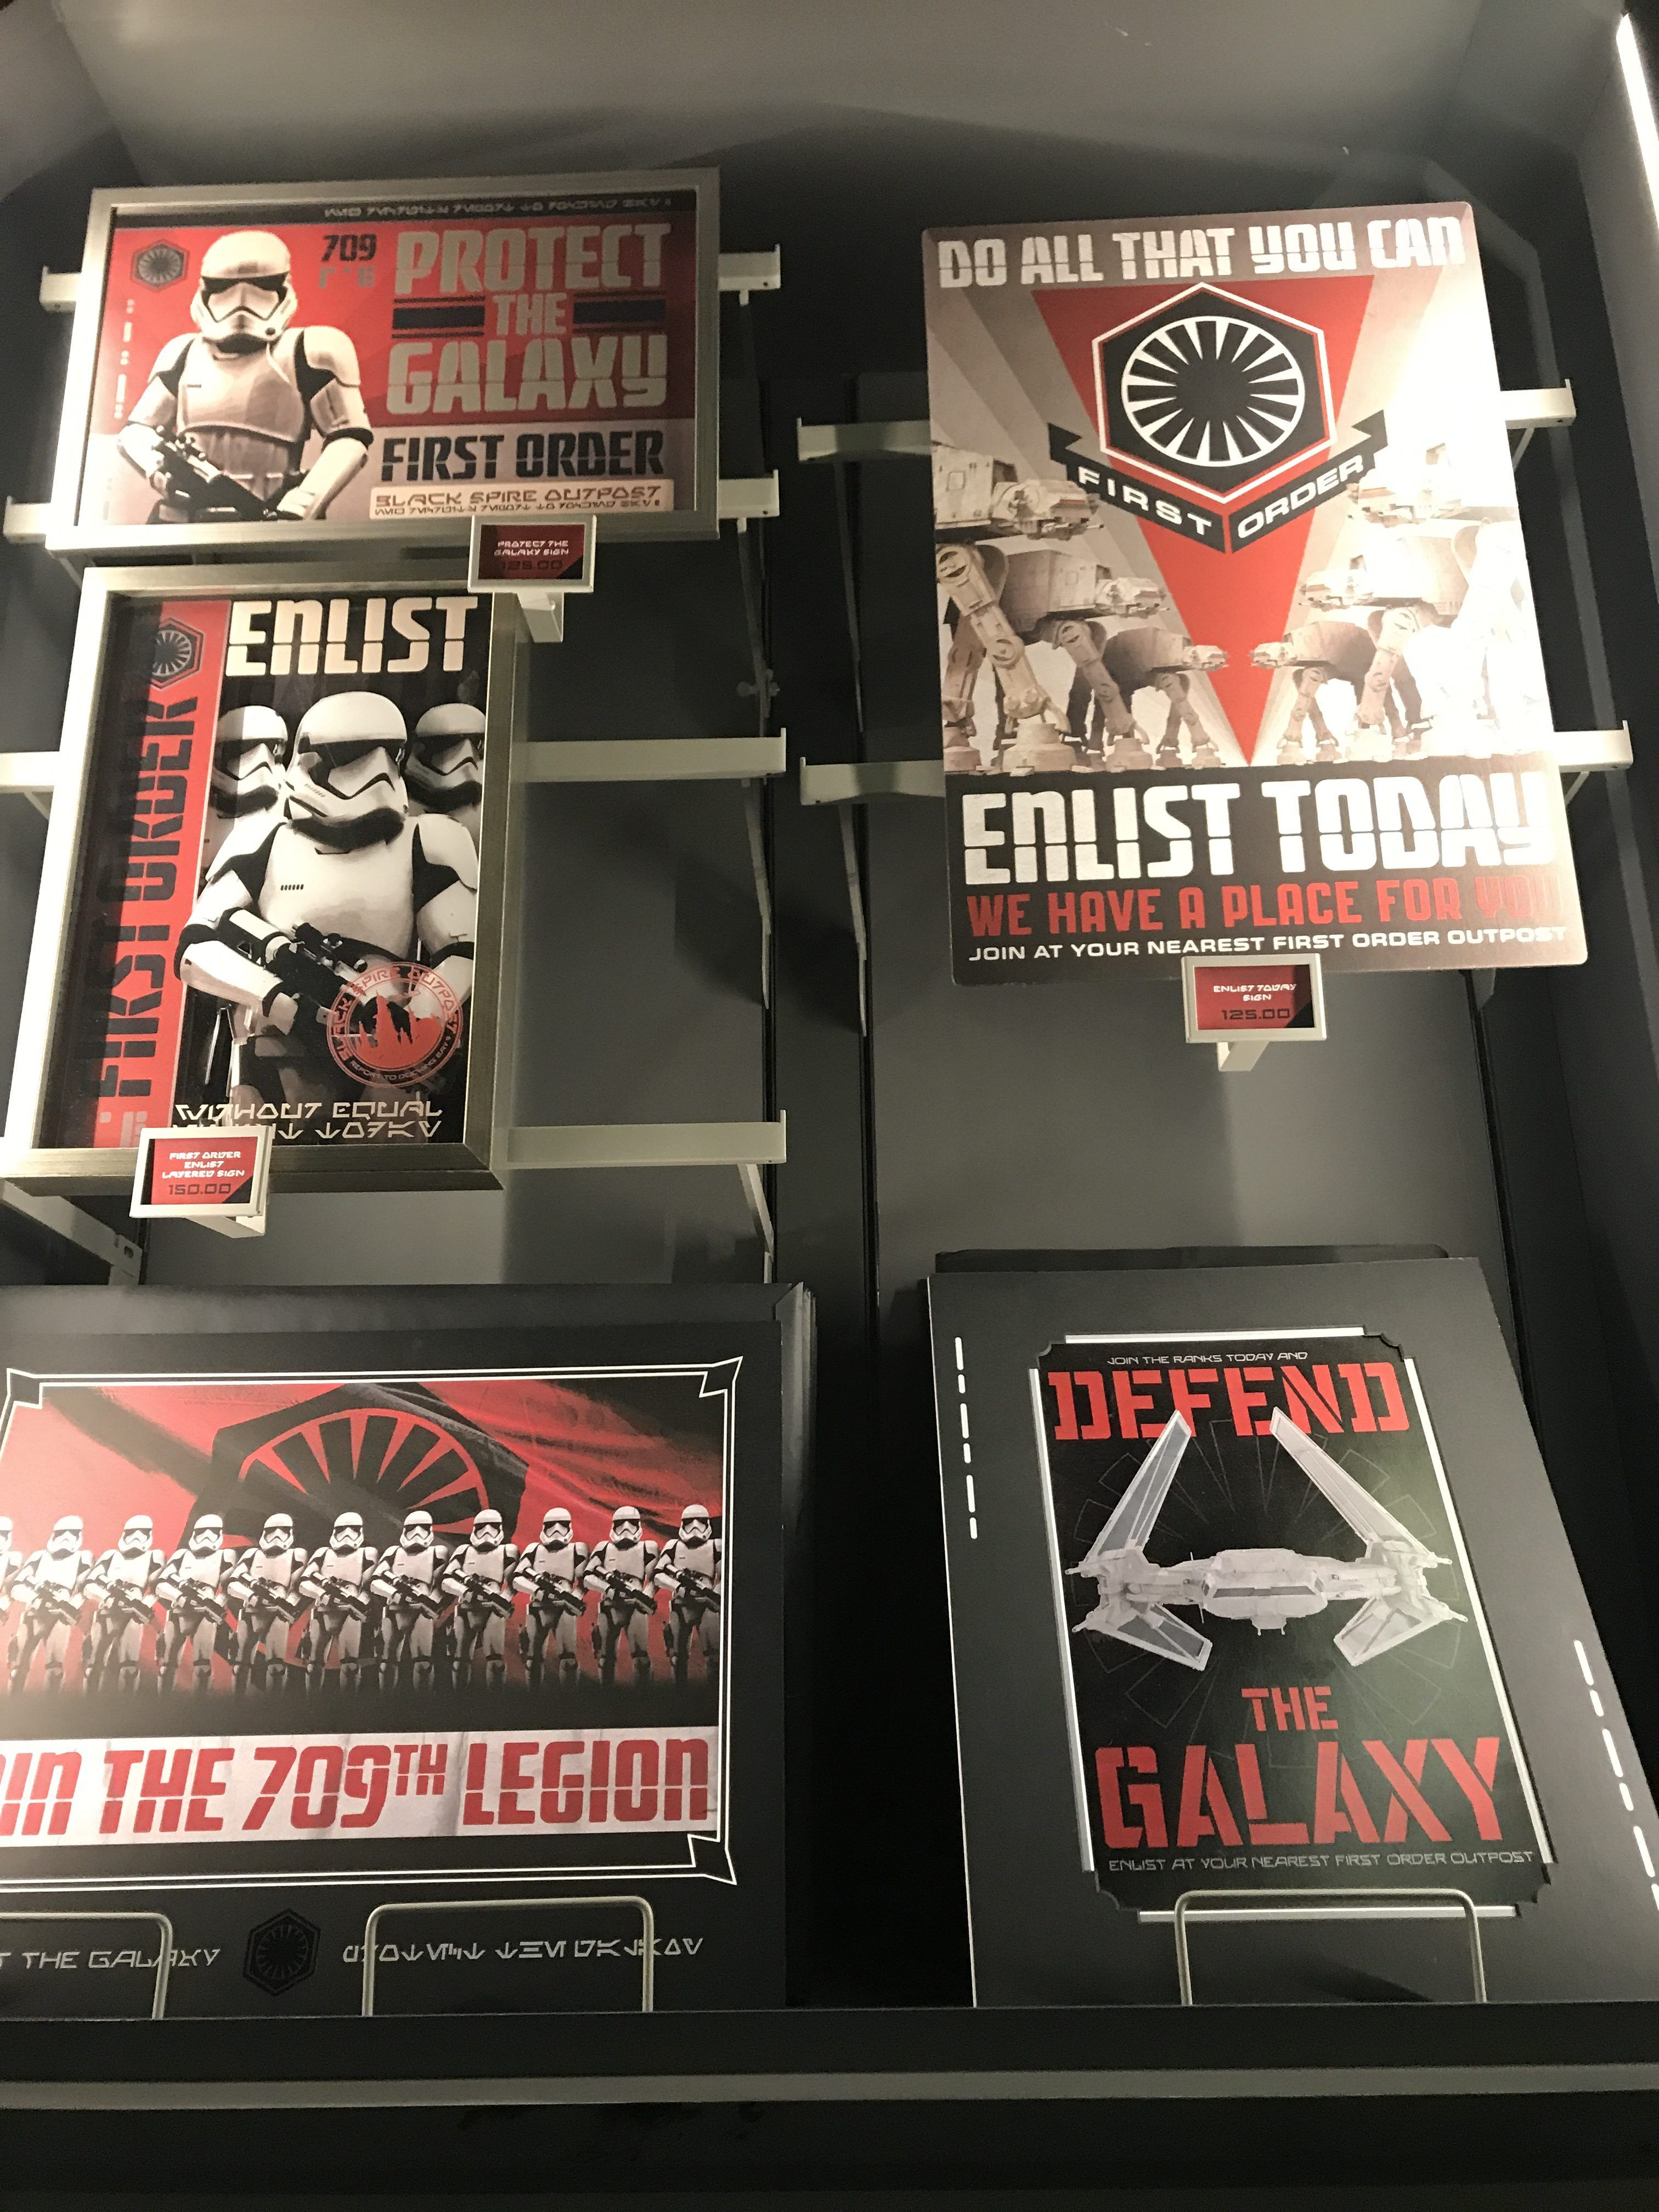 Star wars galaxy 39 s edge merch toys and clothing images for Merchandising star wars